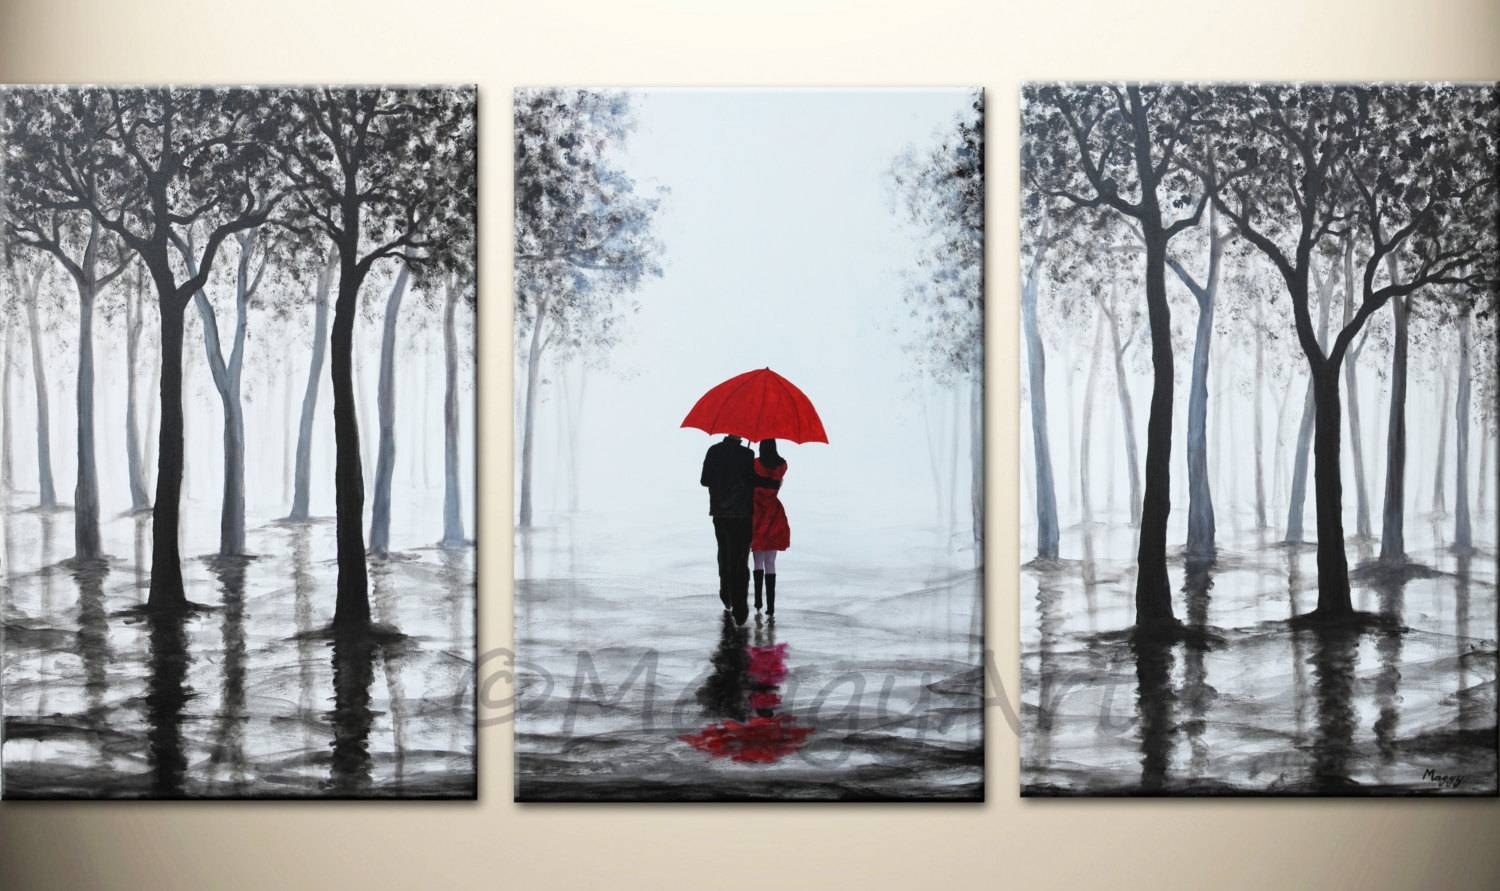 Original Acrylic Painting72X36 Inch Walking In Rain Black Throughout 2018 Black And White Wall Art With Red (View 16 of 25)